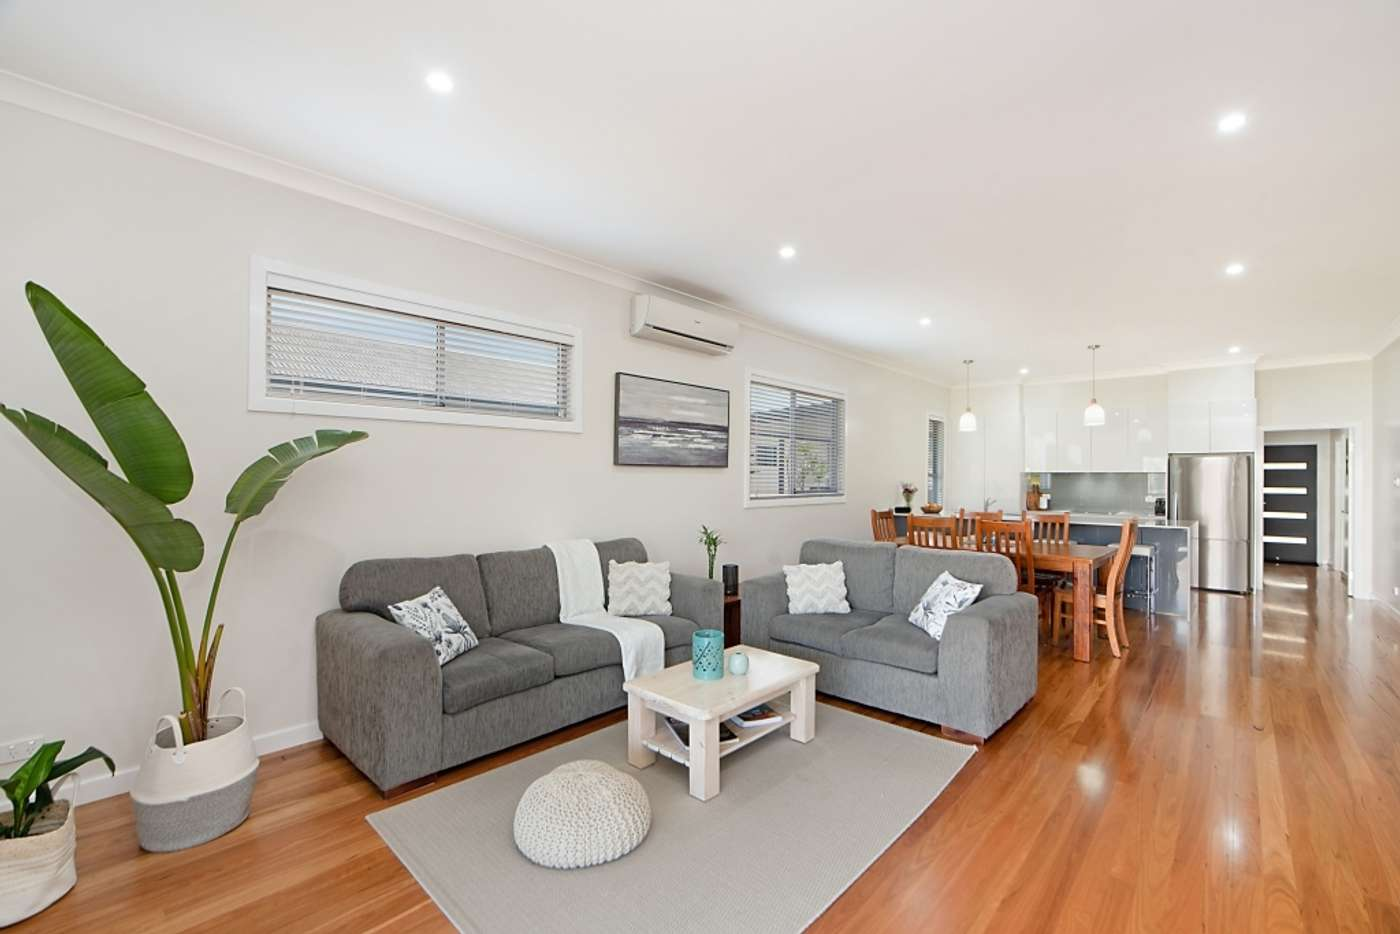 Fifth view of Homely house listing, 18 Redrose Ave, Belmont NSW 2280